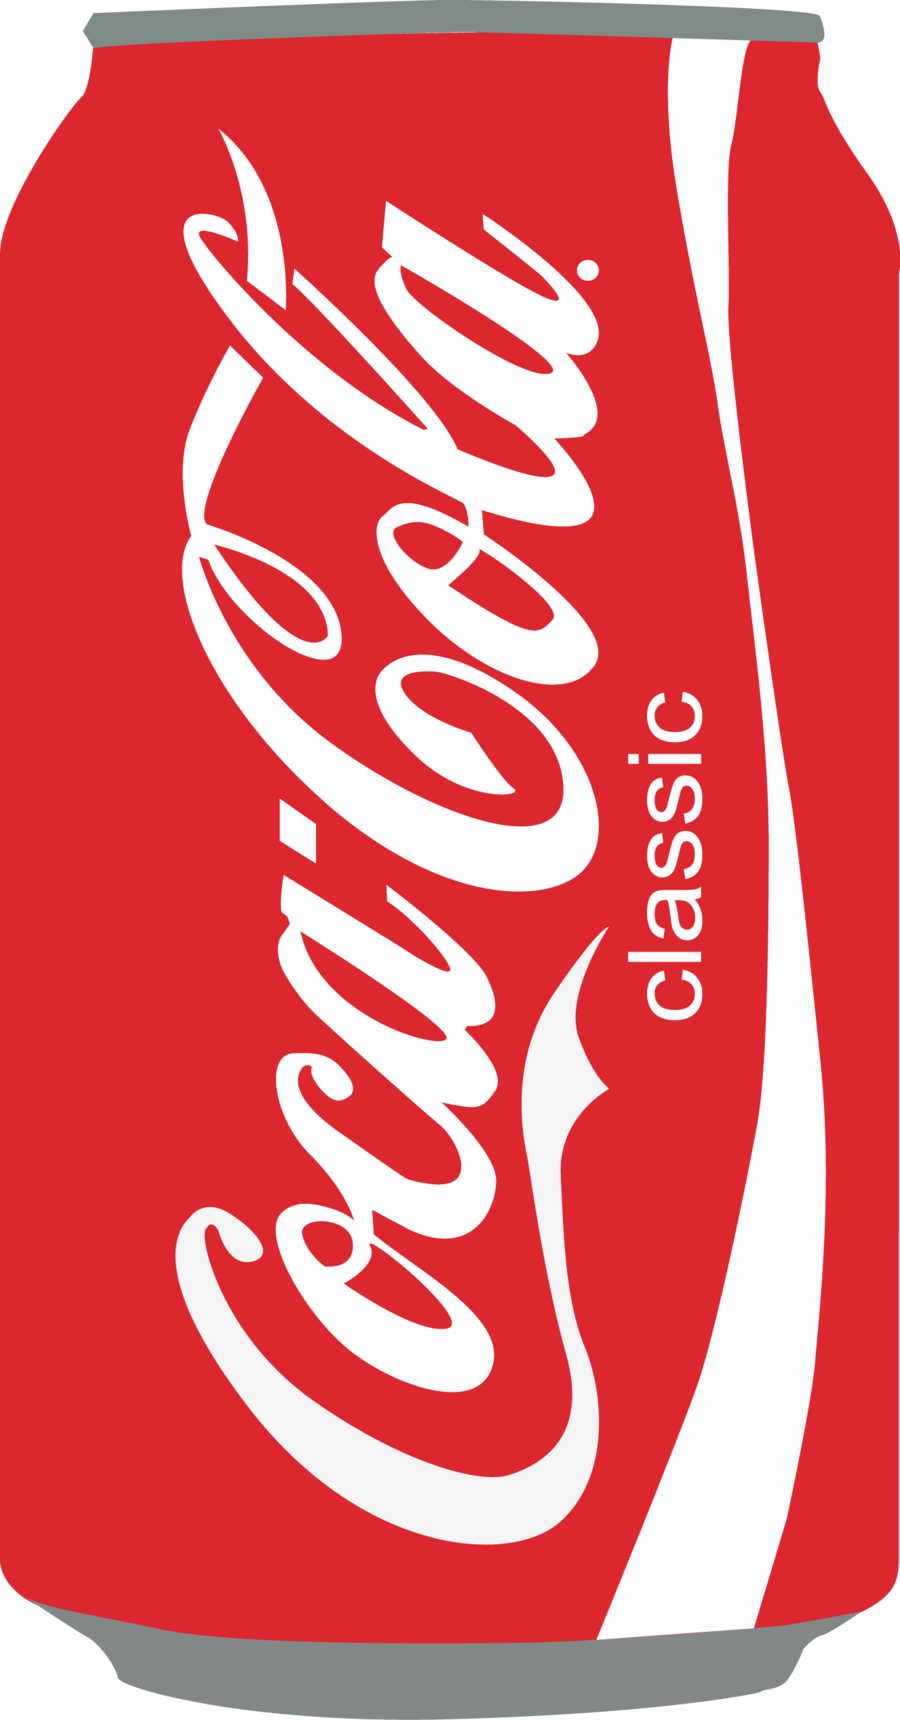 Soda clipart free images image